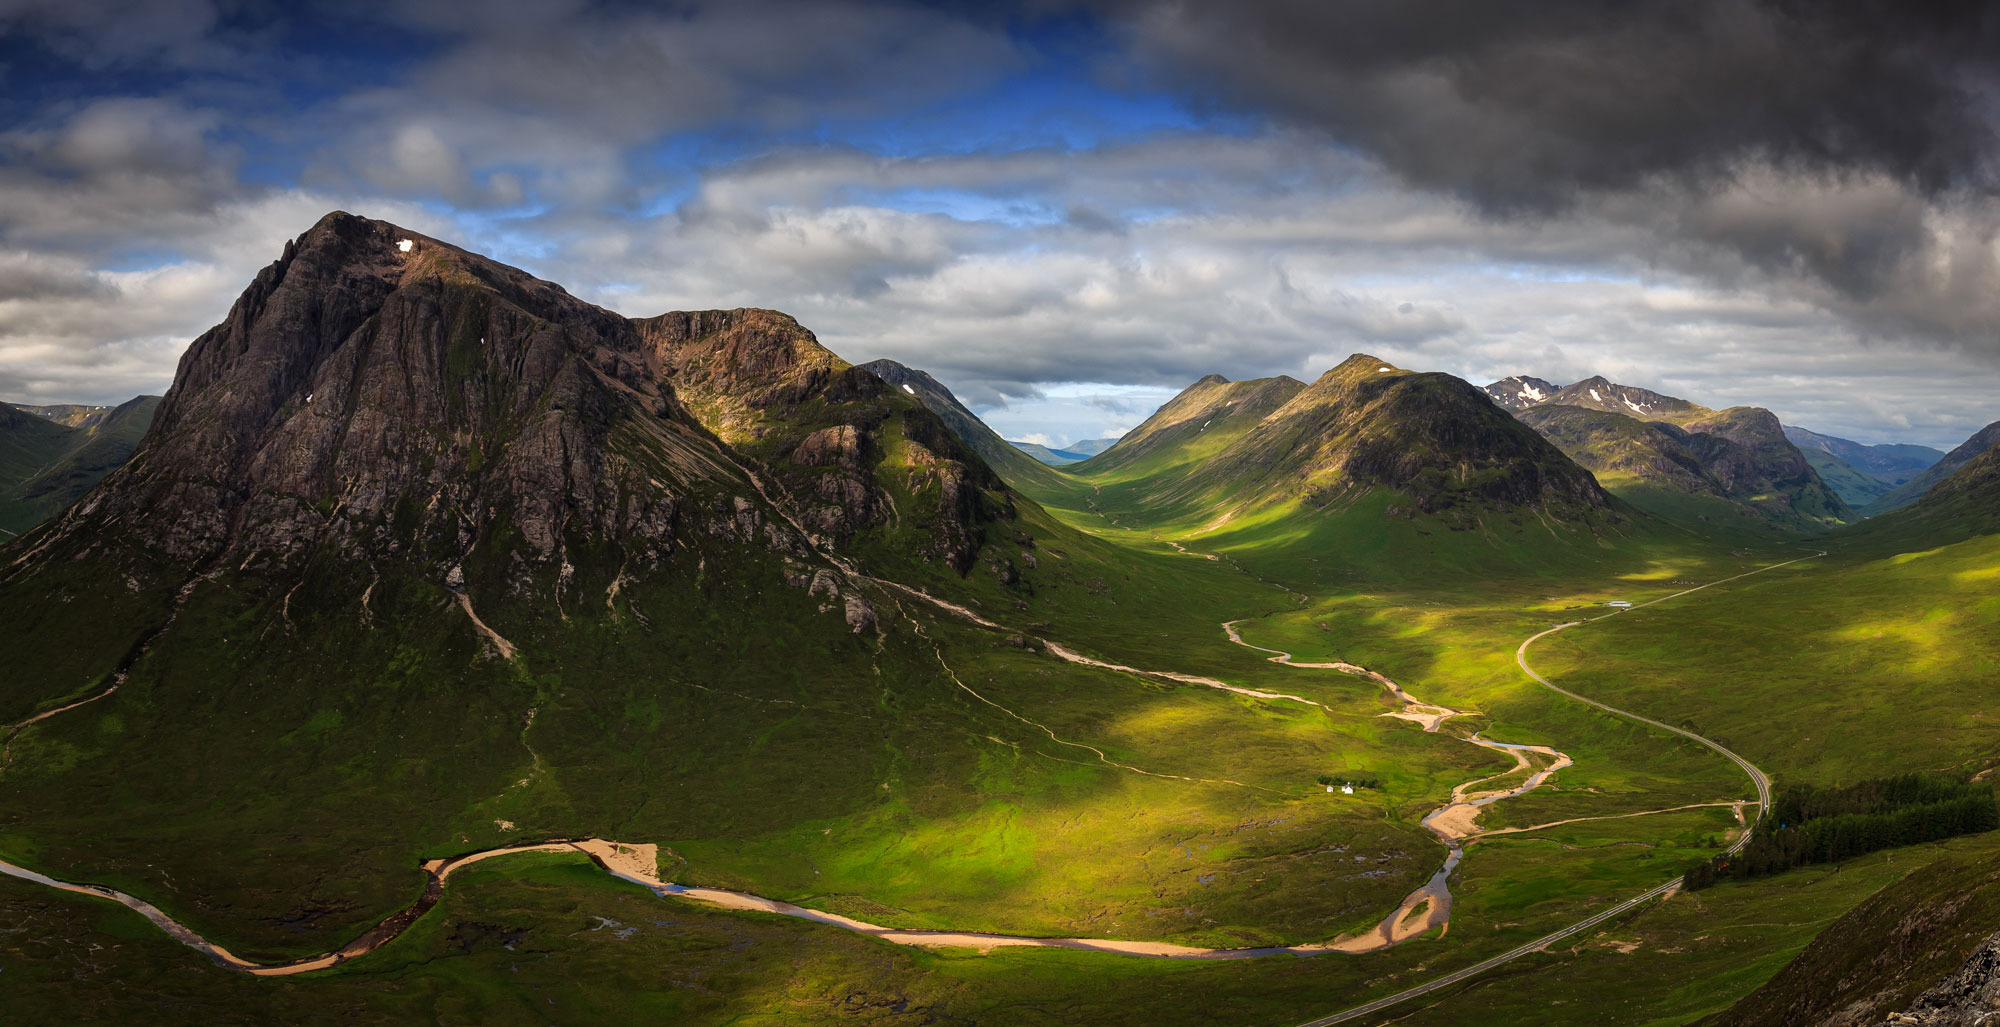 6. The Scottish Highlands - Stay in a treehouse, or a wigwam, or a Celtic castle, if you like. Tourism to the Highlands is booming, and the accommodations are becoming more and more unique to cater to their increasingly adventurous clientele. Why not opt for glamping beneath the stars? All the better to see the Northern Lights this year.